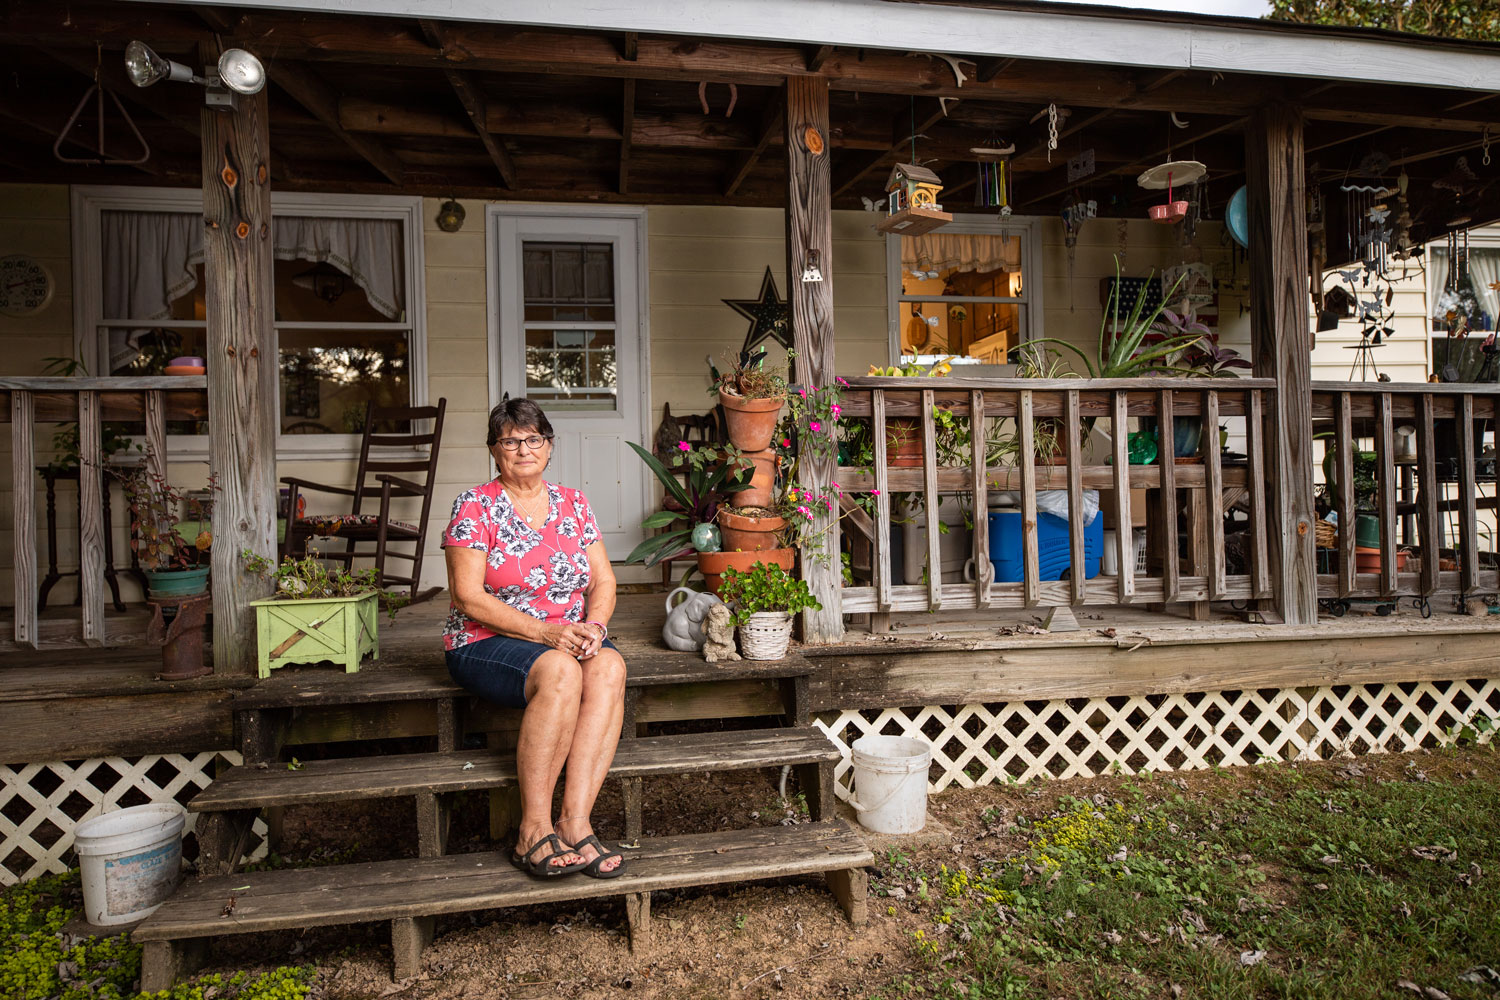 A woman sits on a porch filled with plans and wind chimes outside a house.